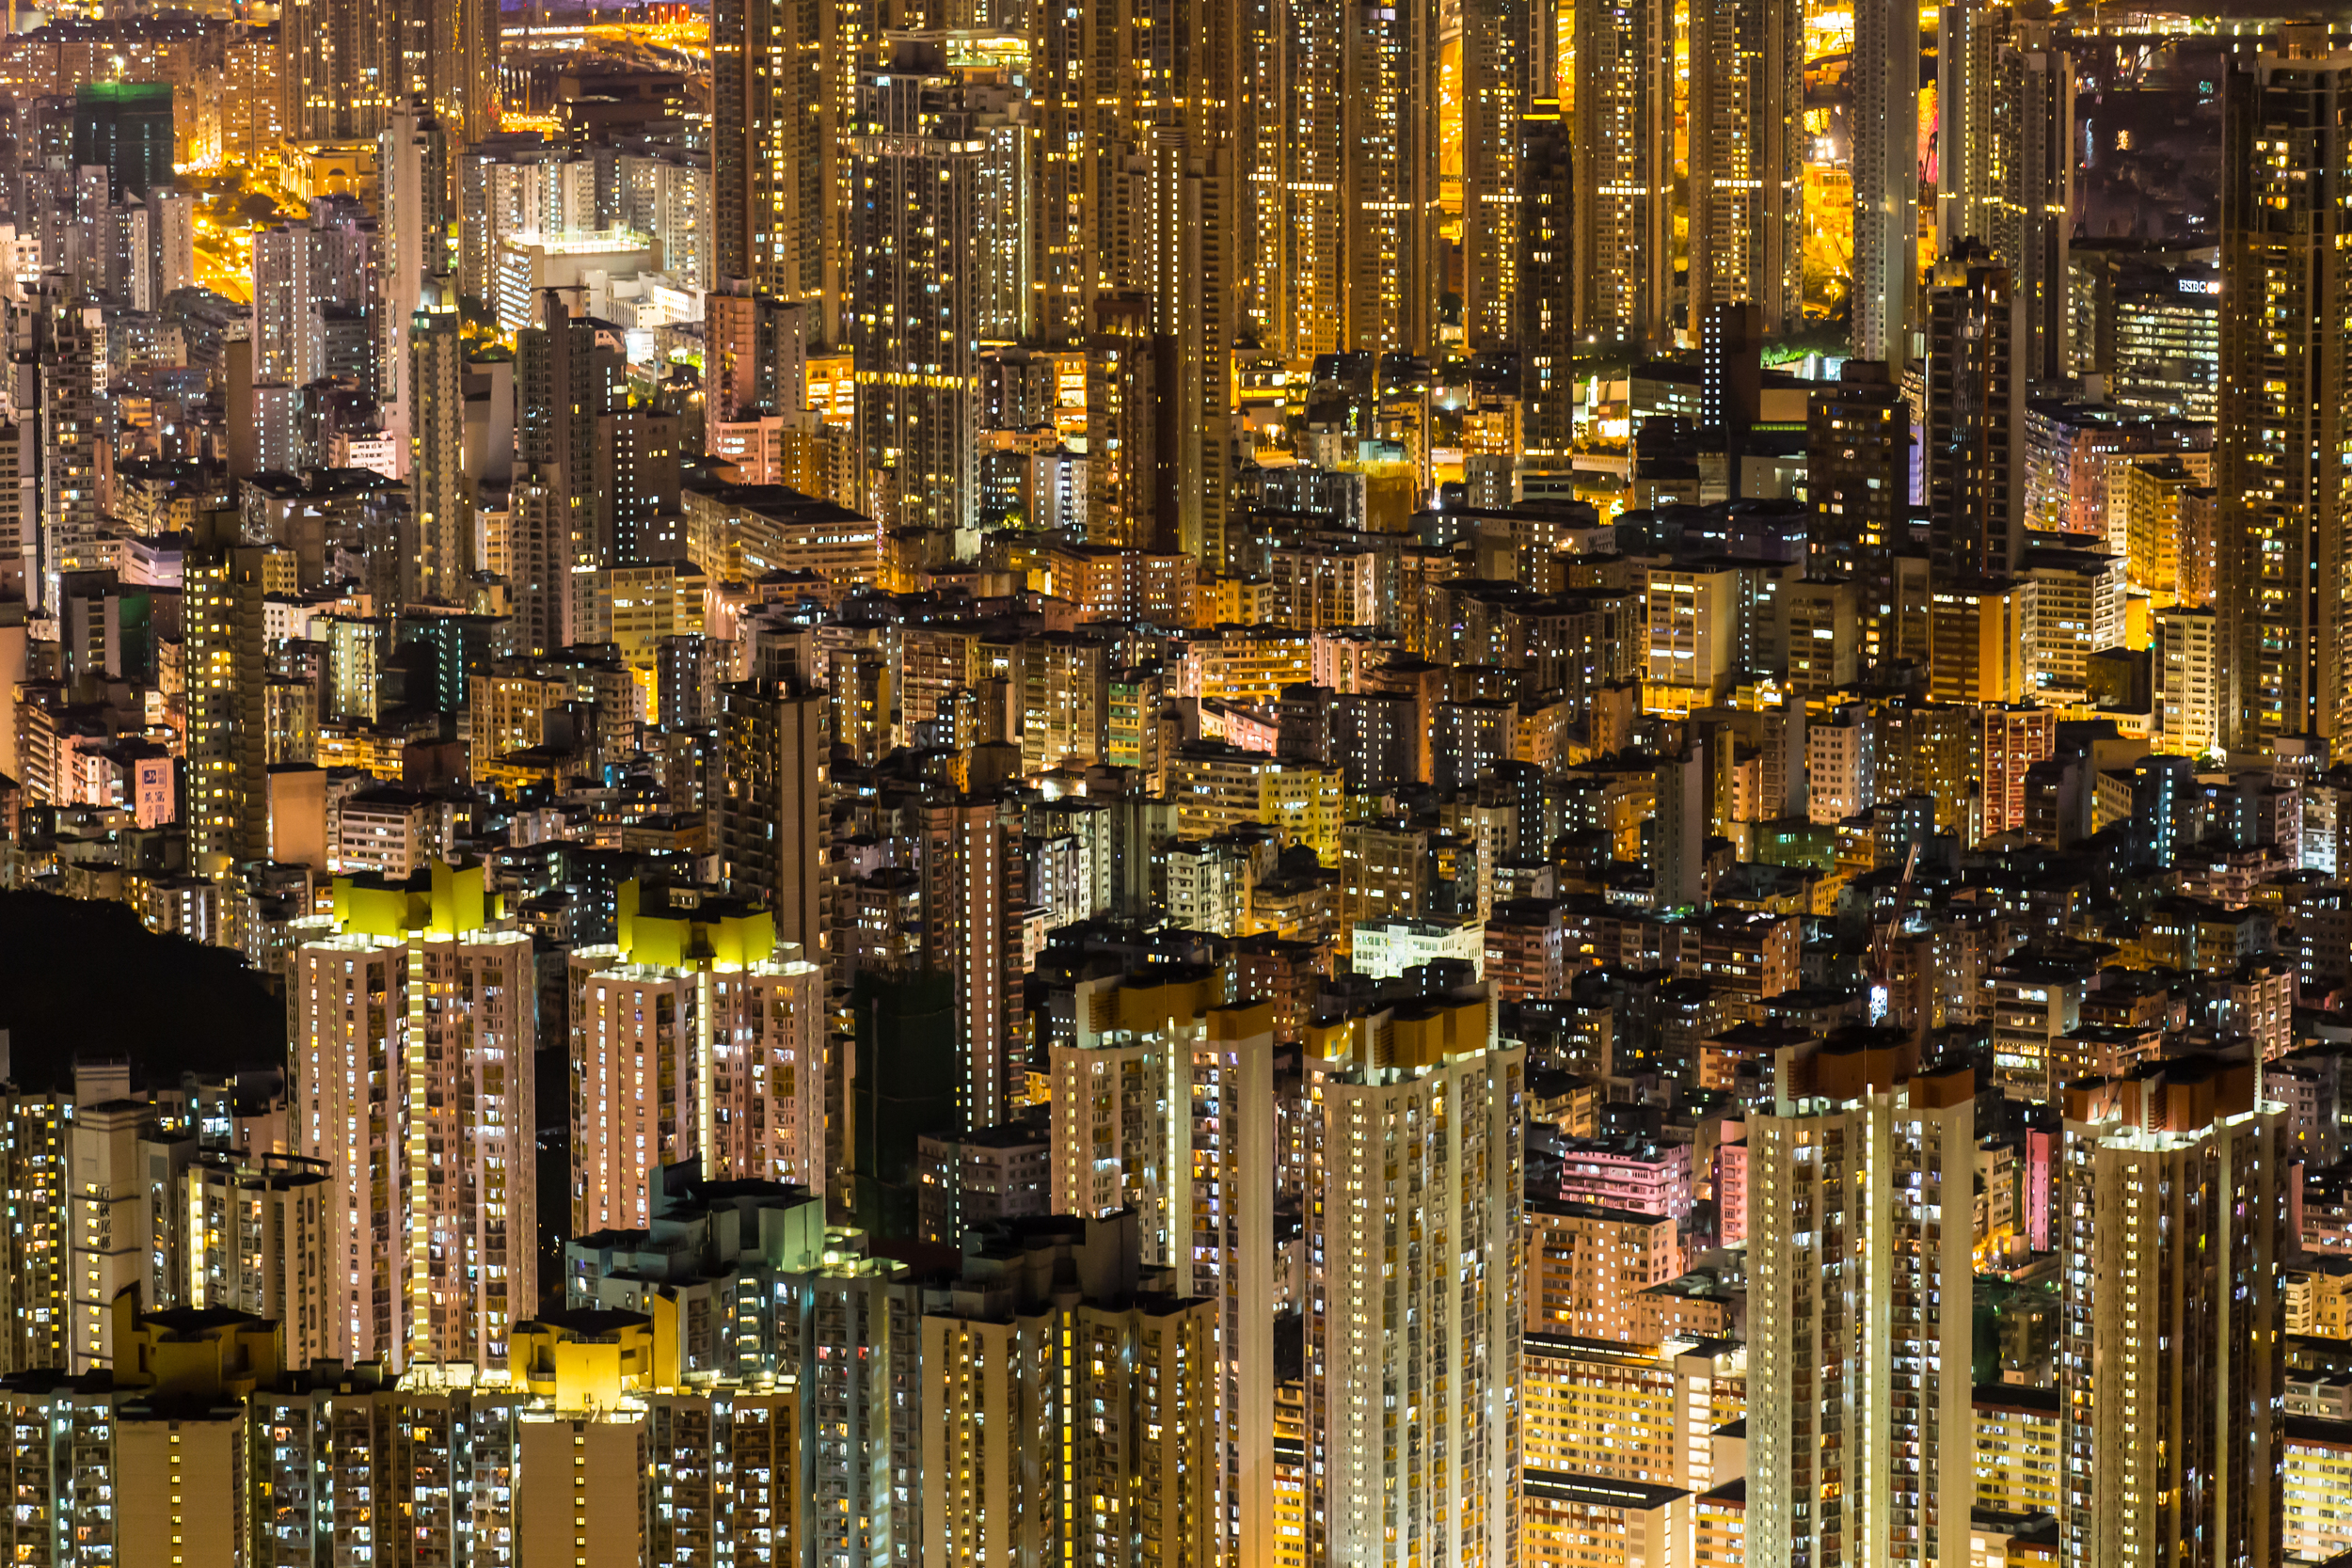 """""""Magic Eye""""   National Geographic - """"Photo of the Day""""   20.07.2014 National Geographic International Website   http://photography.nationalgeographic.com/photography/photo-of-the-day/architecture-night-hong-kong/"""